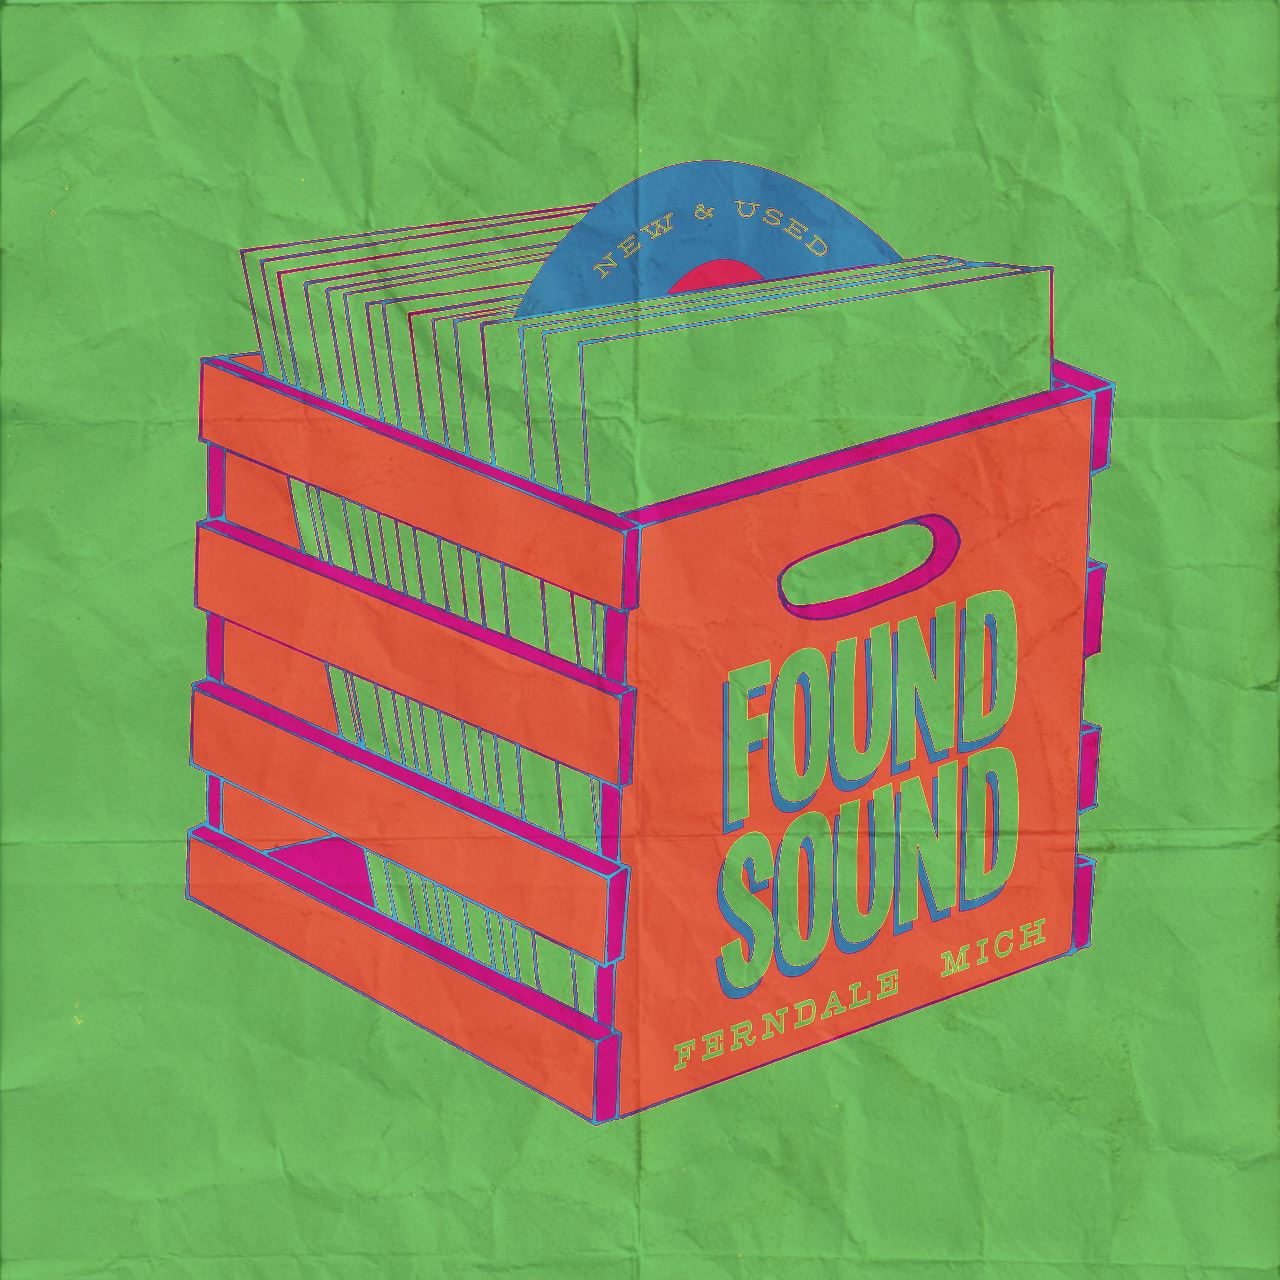 Found Sound    234 W 9 Mile Rd    Ferndale, Michigan 48220     https://www.facebook.com/foundsoundvinyl